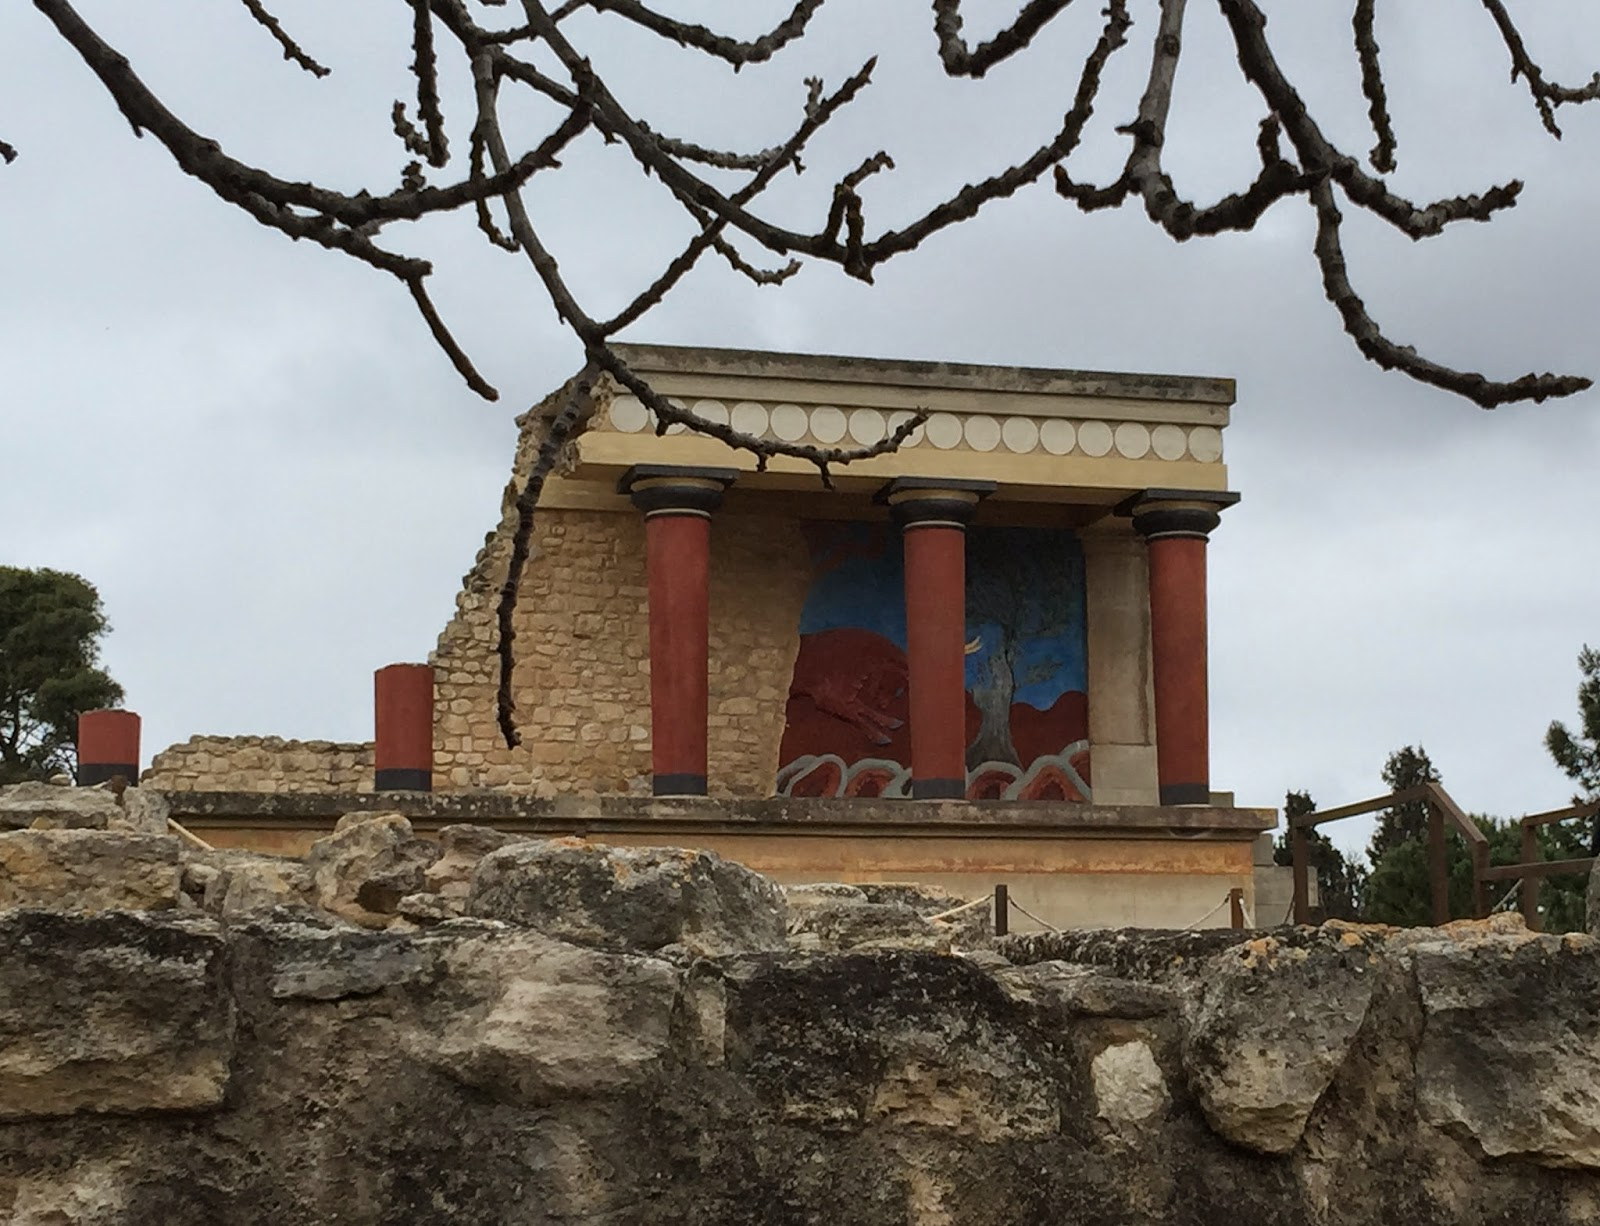 Bull mural at Knossos Palace ruins on Greek island of Crete